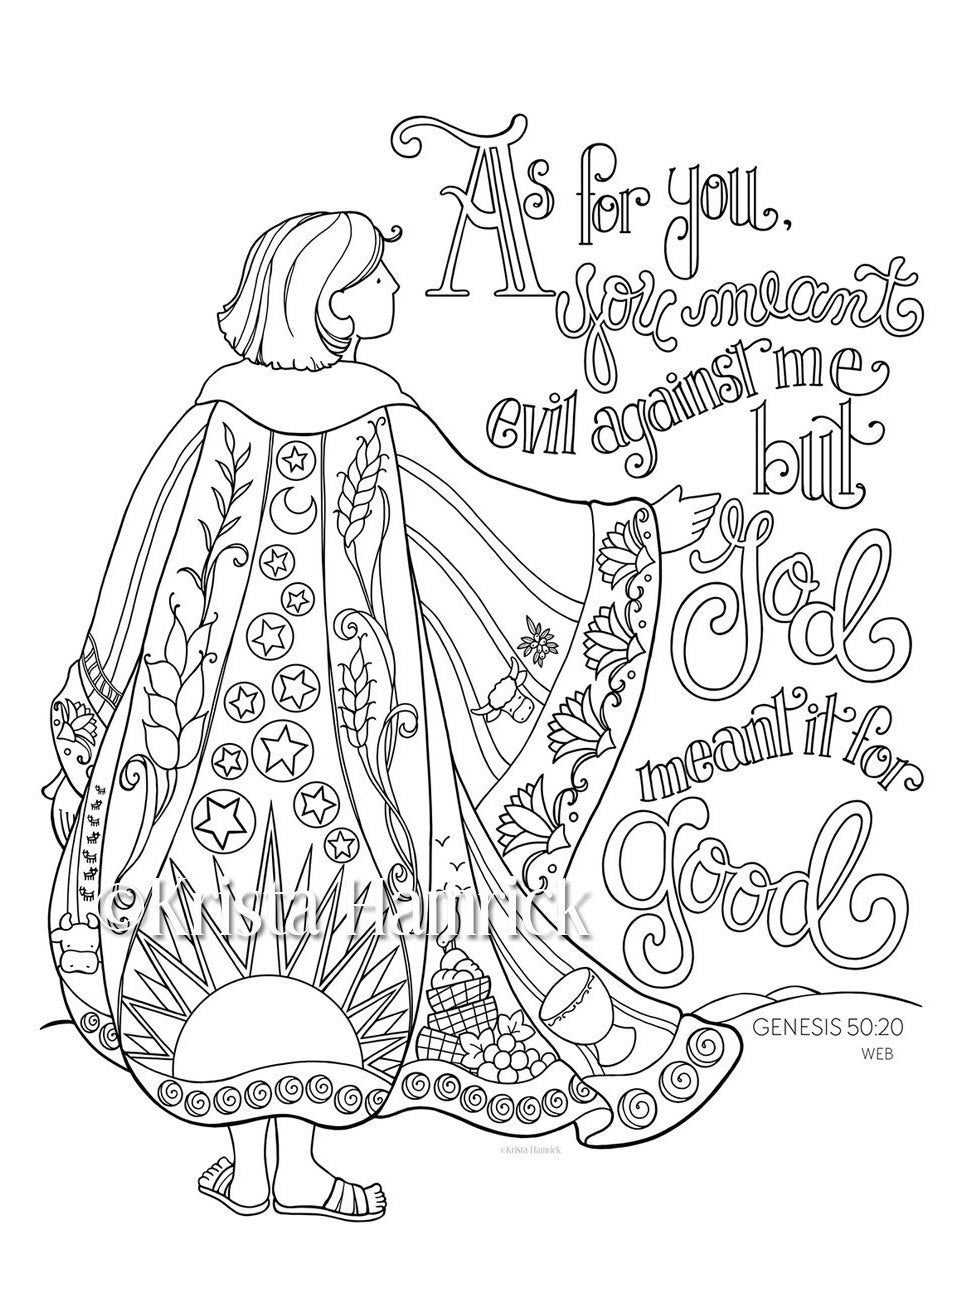 joseph coat of many colors coloring page top joseph coat of many colors free coloring page top coloring many colors of coat joseph page